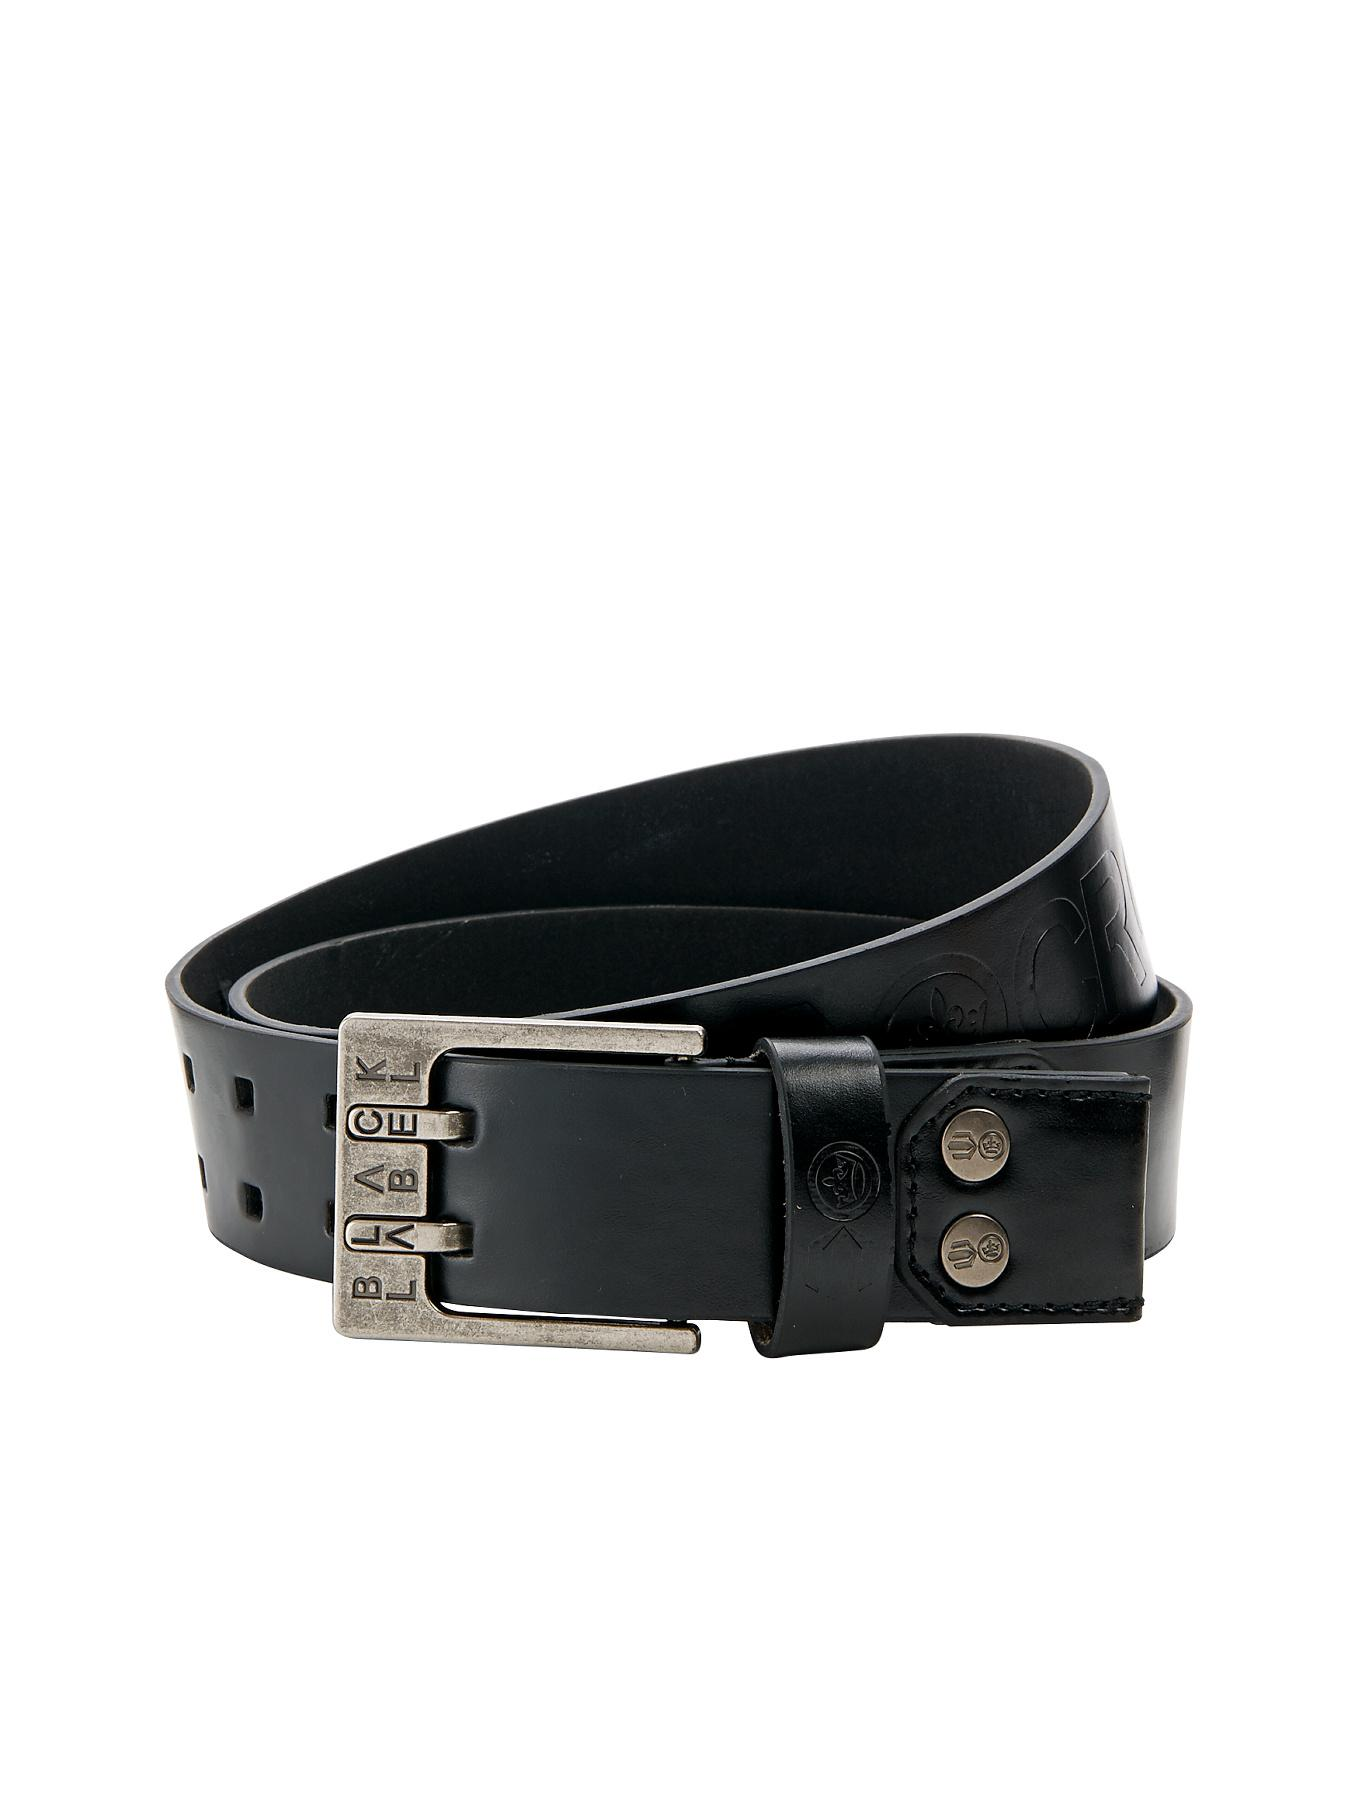 Crosshatch Mens Belt - Black, Black